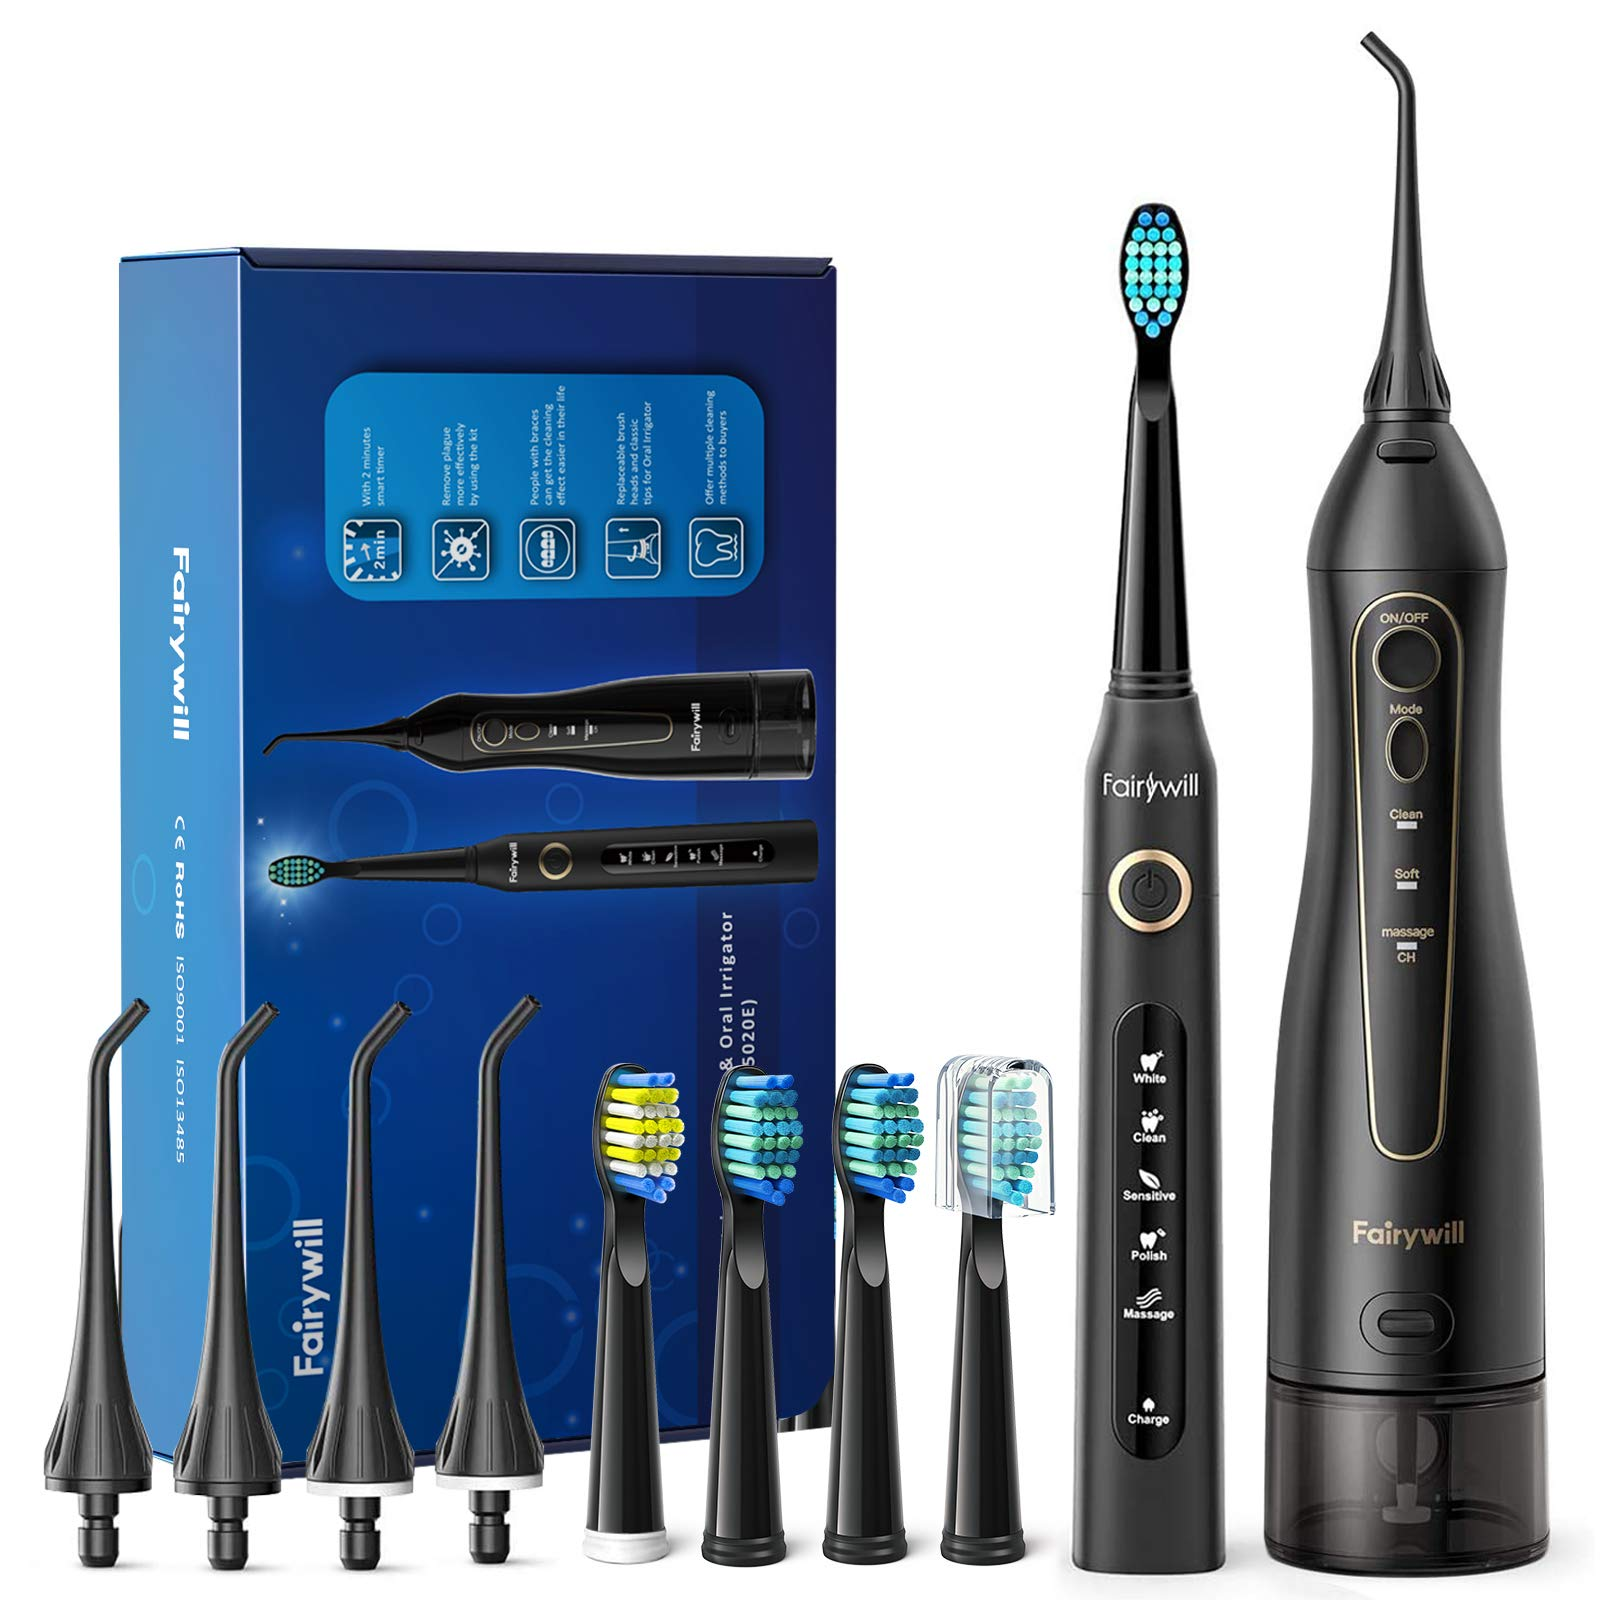 Water Flosser and Toothbrush Combo, Fairywill Teeth Cleaner Set, 4 Hours Charge for 30 Days Use, 5 Optional Modes and 4 Brush Heads Whitening Toothbrushes, 3 Modes and 4 Jet Tips Oral Irrigator